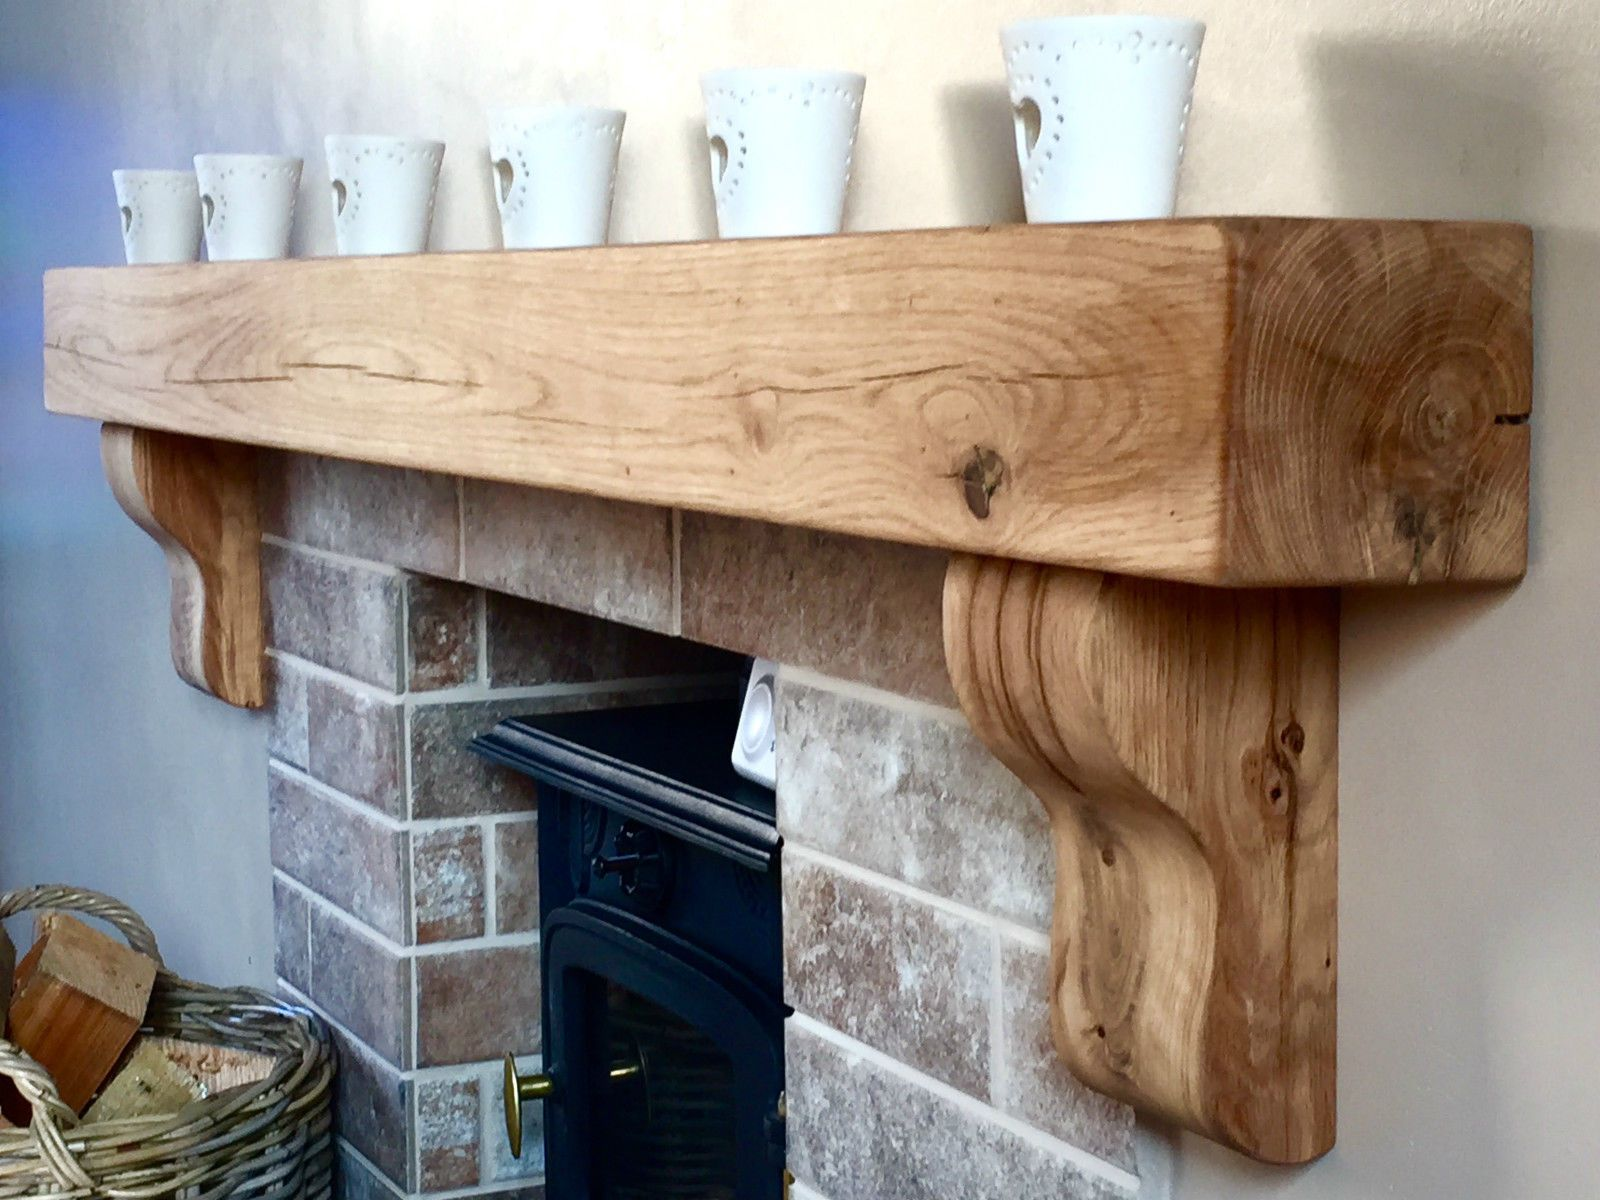 details about oak beam with corbels floating mantel shelf for fireplace solid beautiful bathroom shelves sturdy kitchen unique shoe rack unfinished crown molding small storage